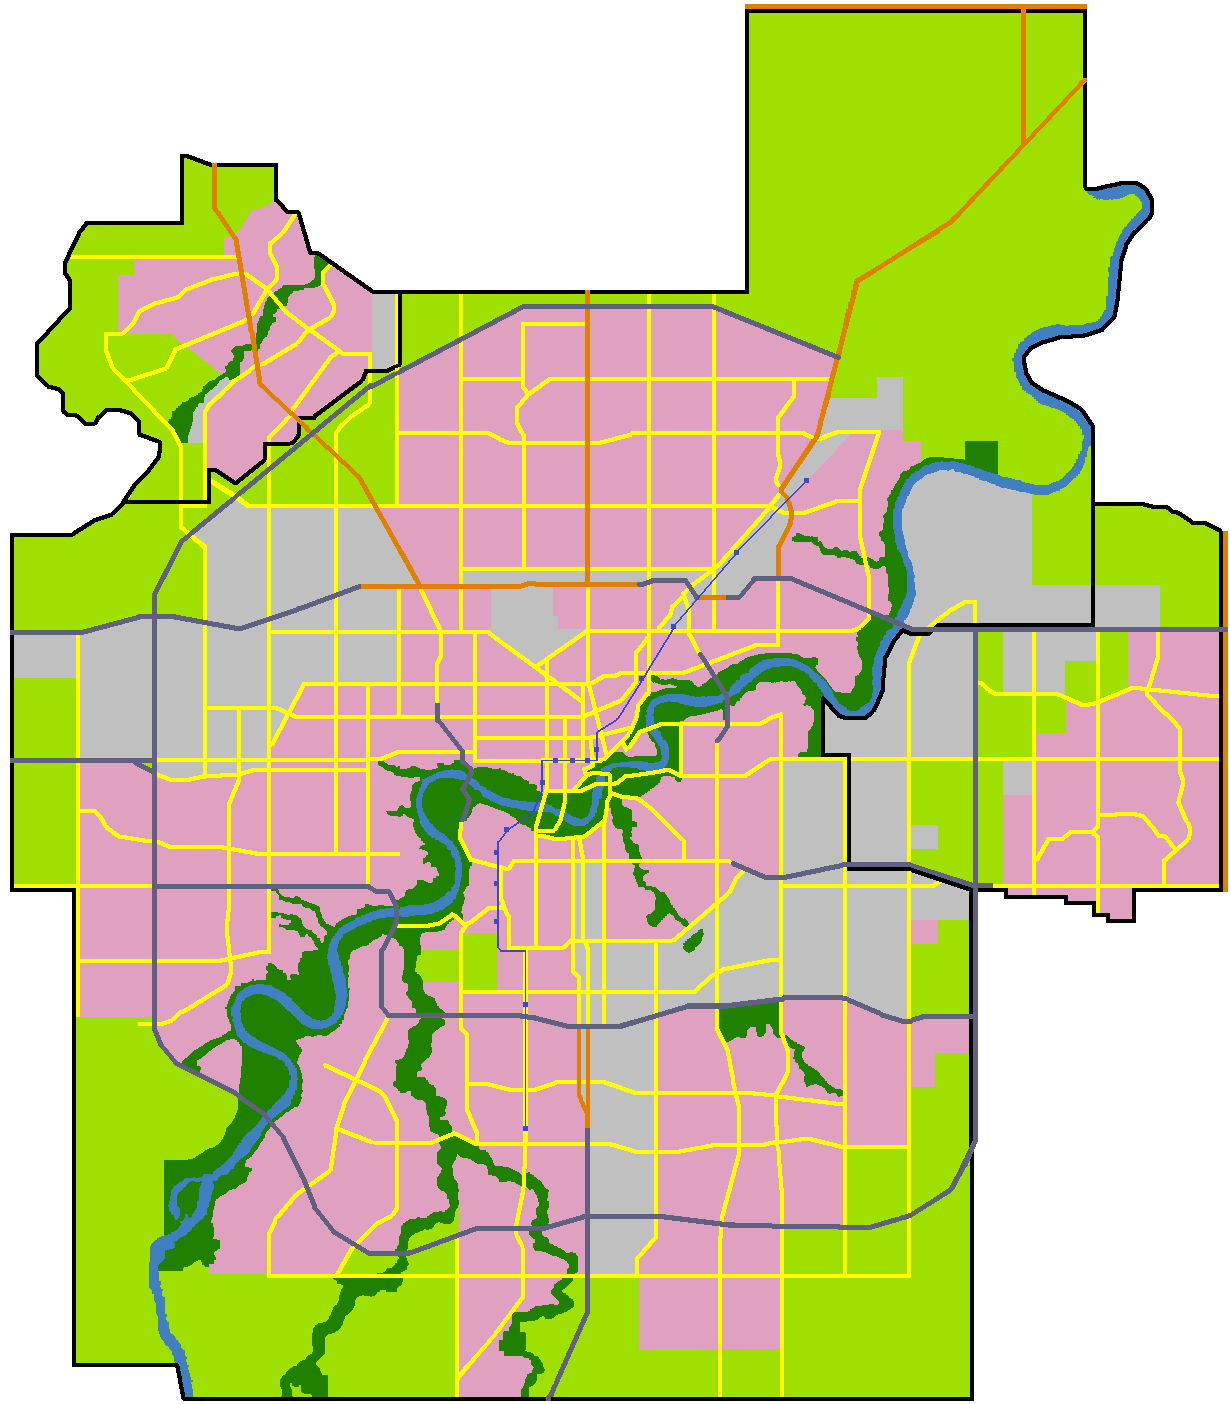 North Saskatchewan River valley parks system.